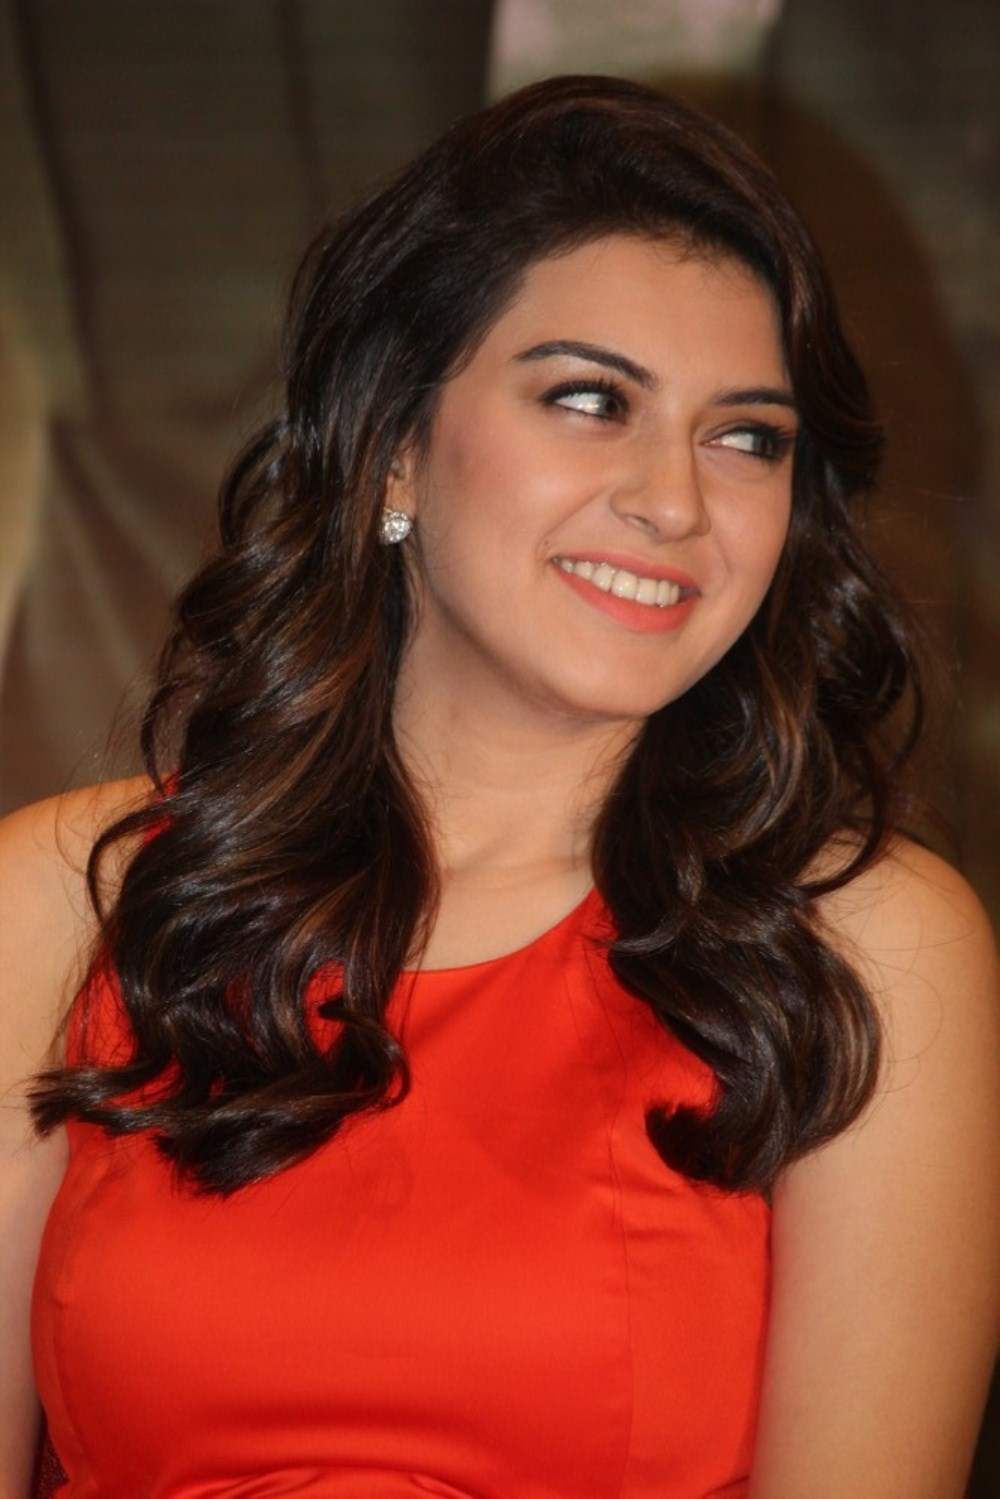 Remarkable, Hansika motwani high quality nude pictures